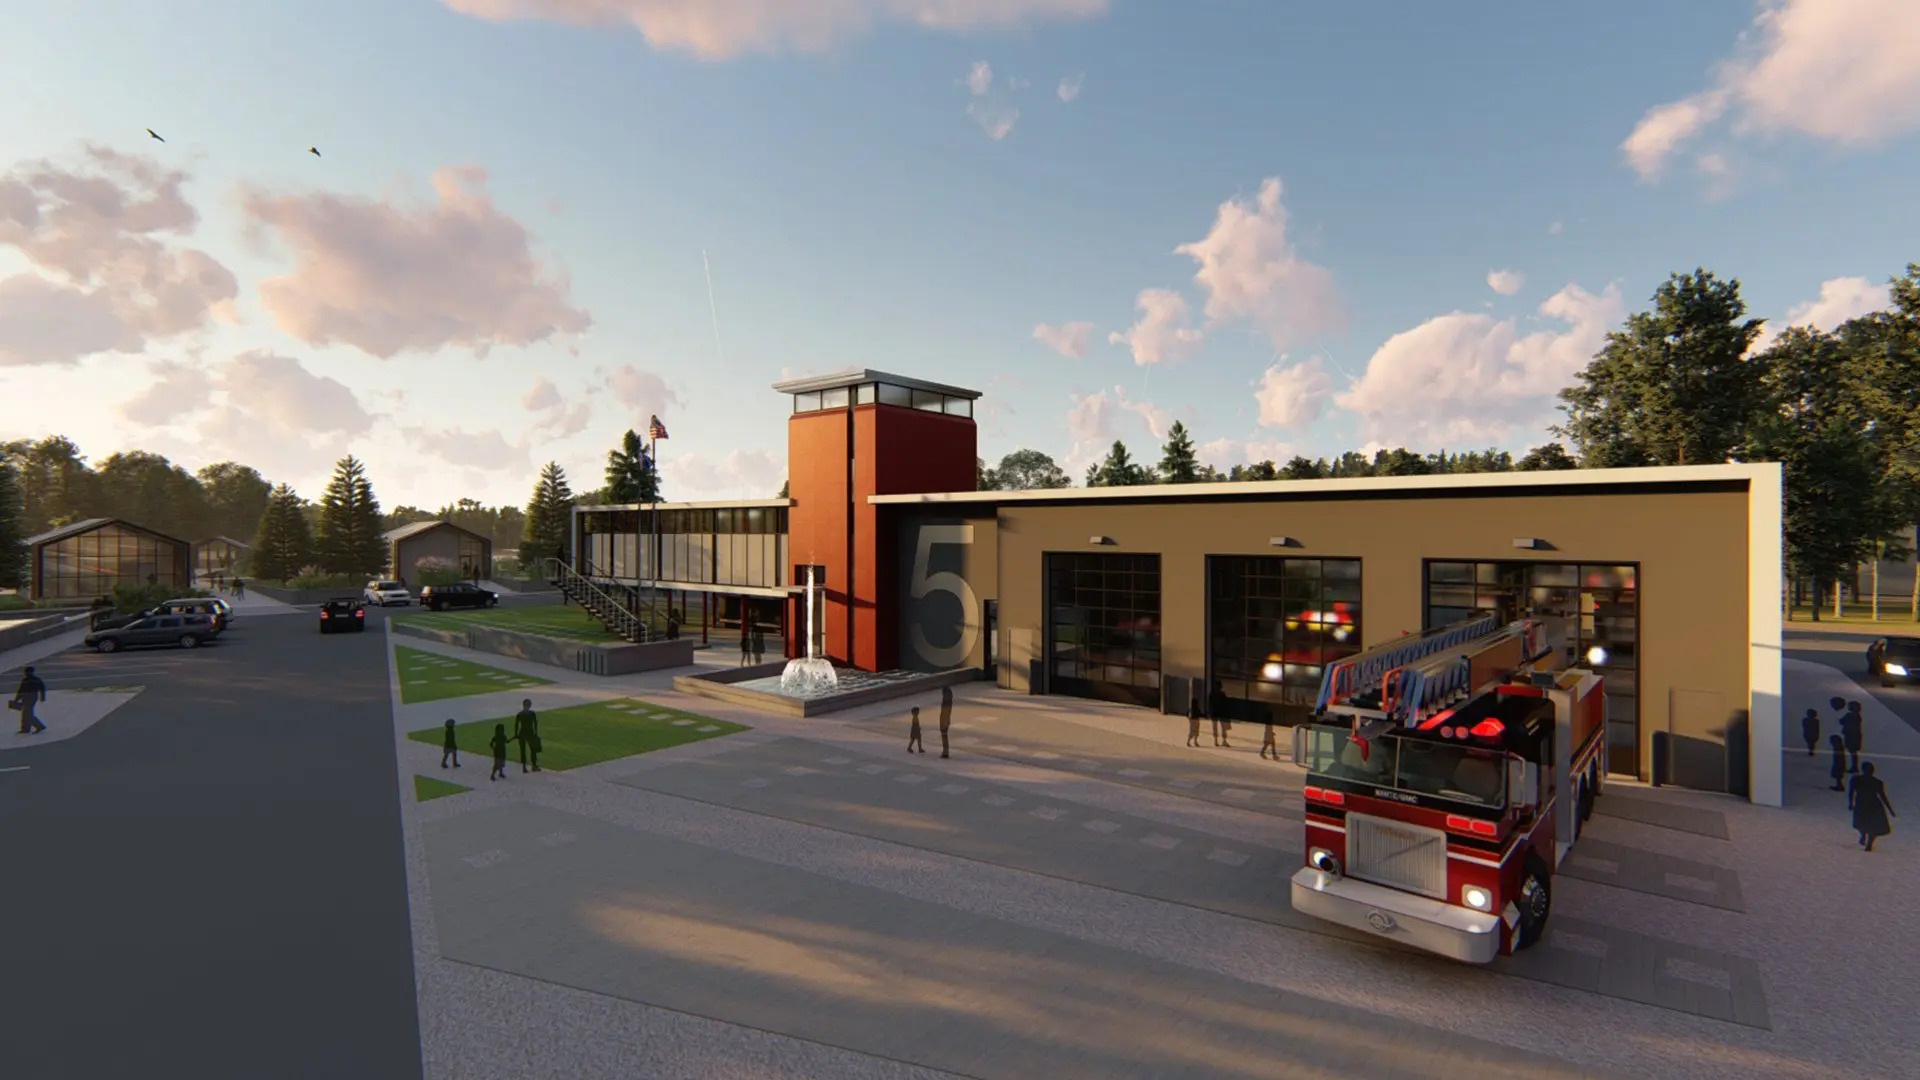 COVID-19 Sparks Innovative Designs for 'Ideal' Fire Station